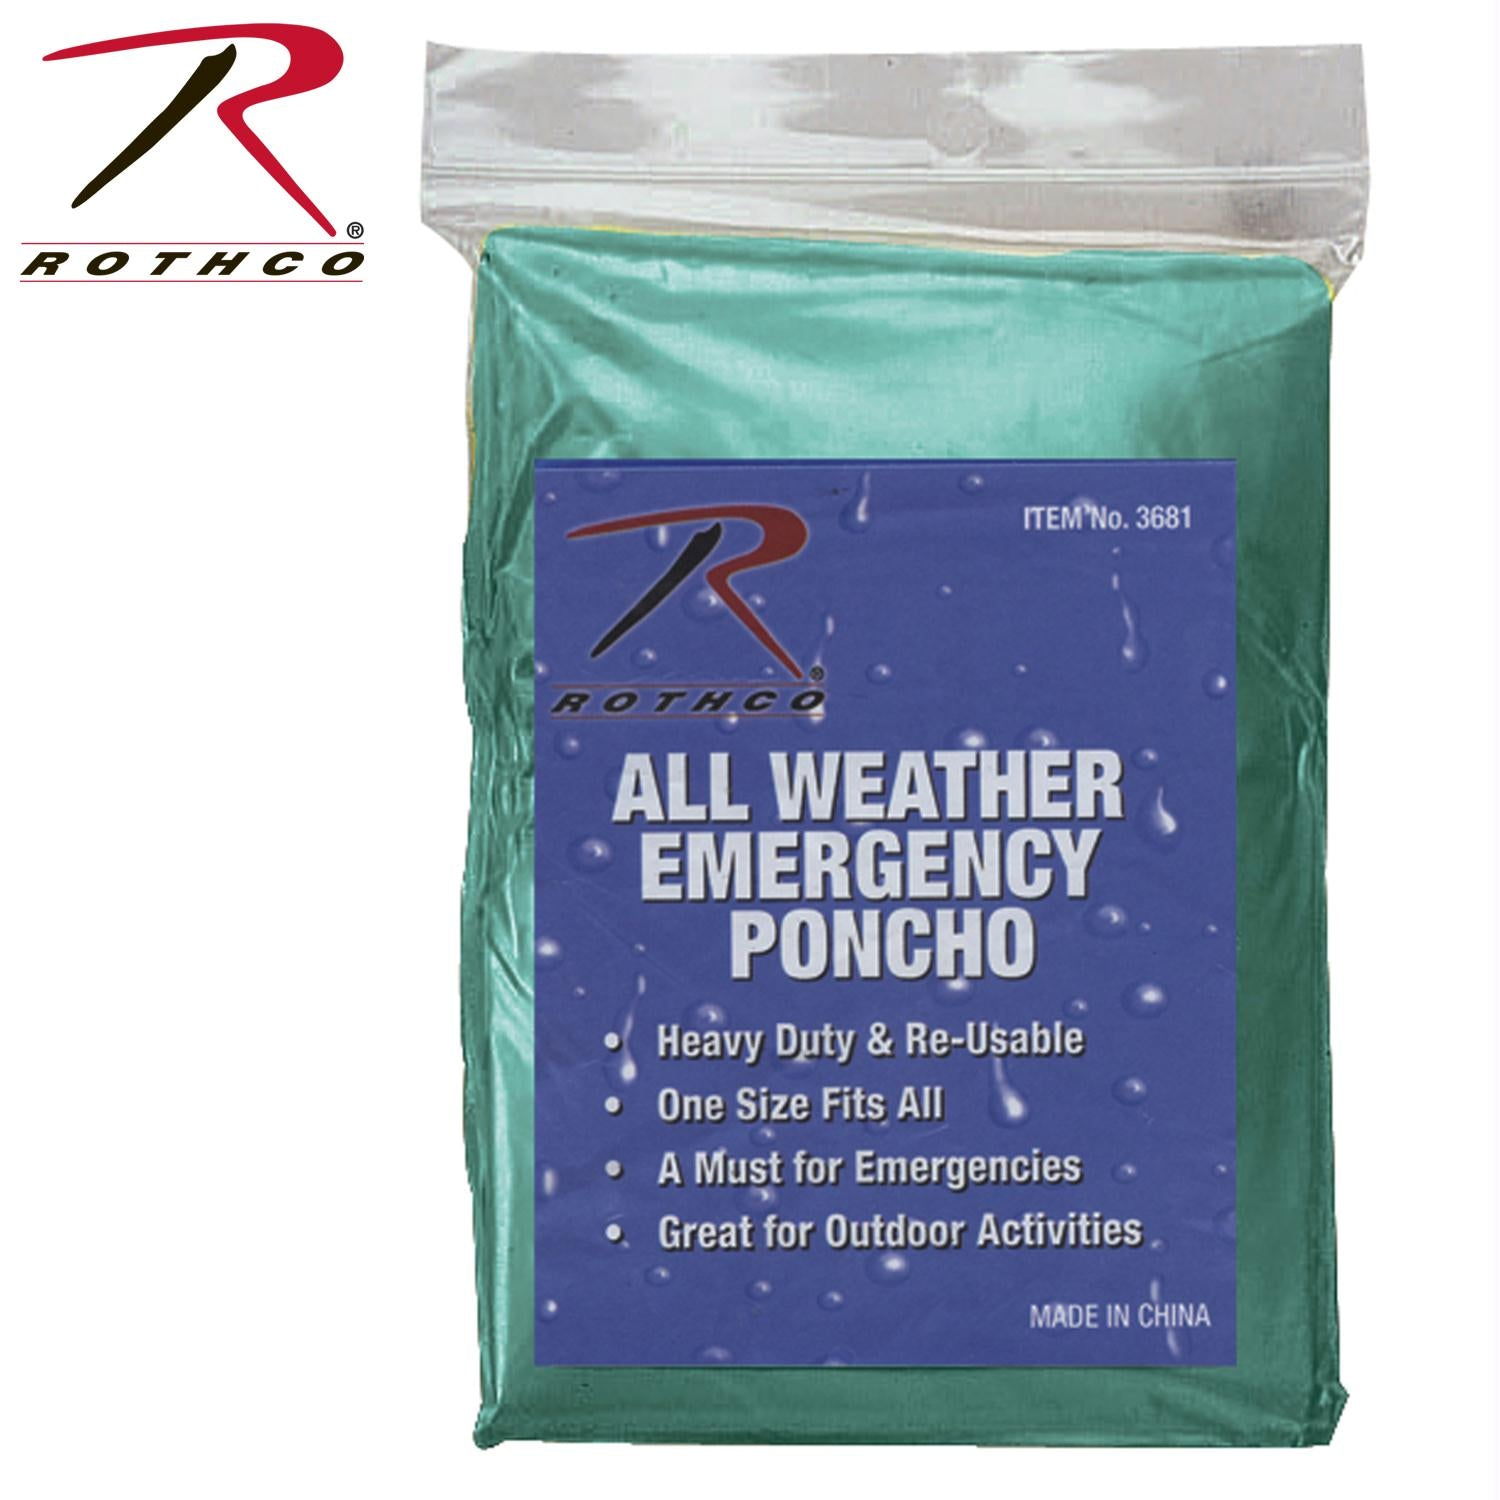 Rothco All Weather Emergency Poncho - Olive Drab